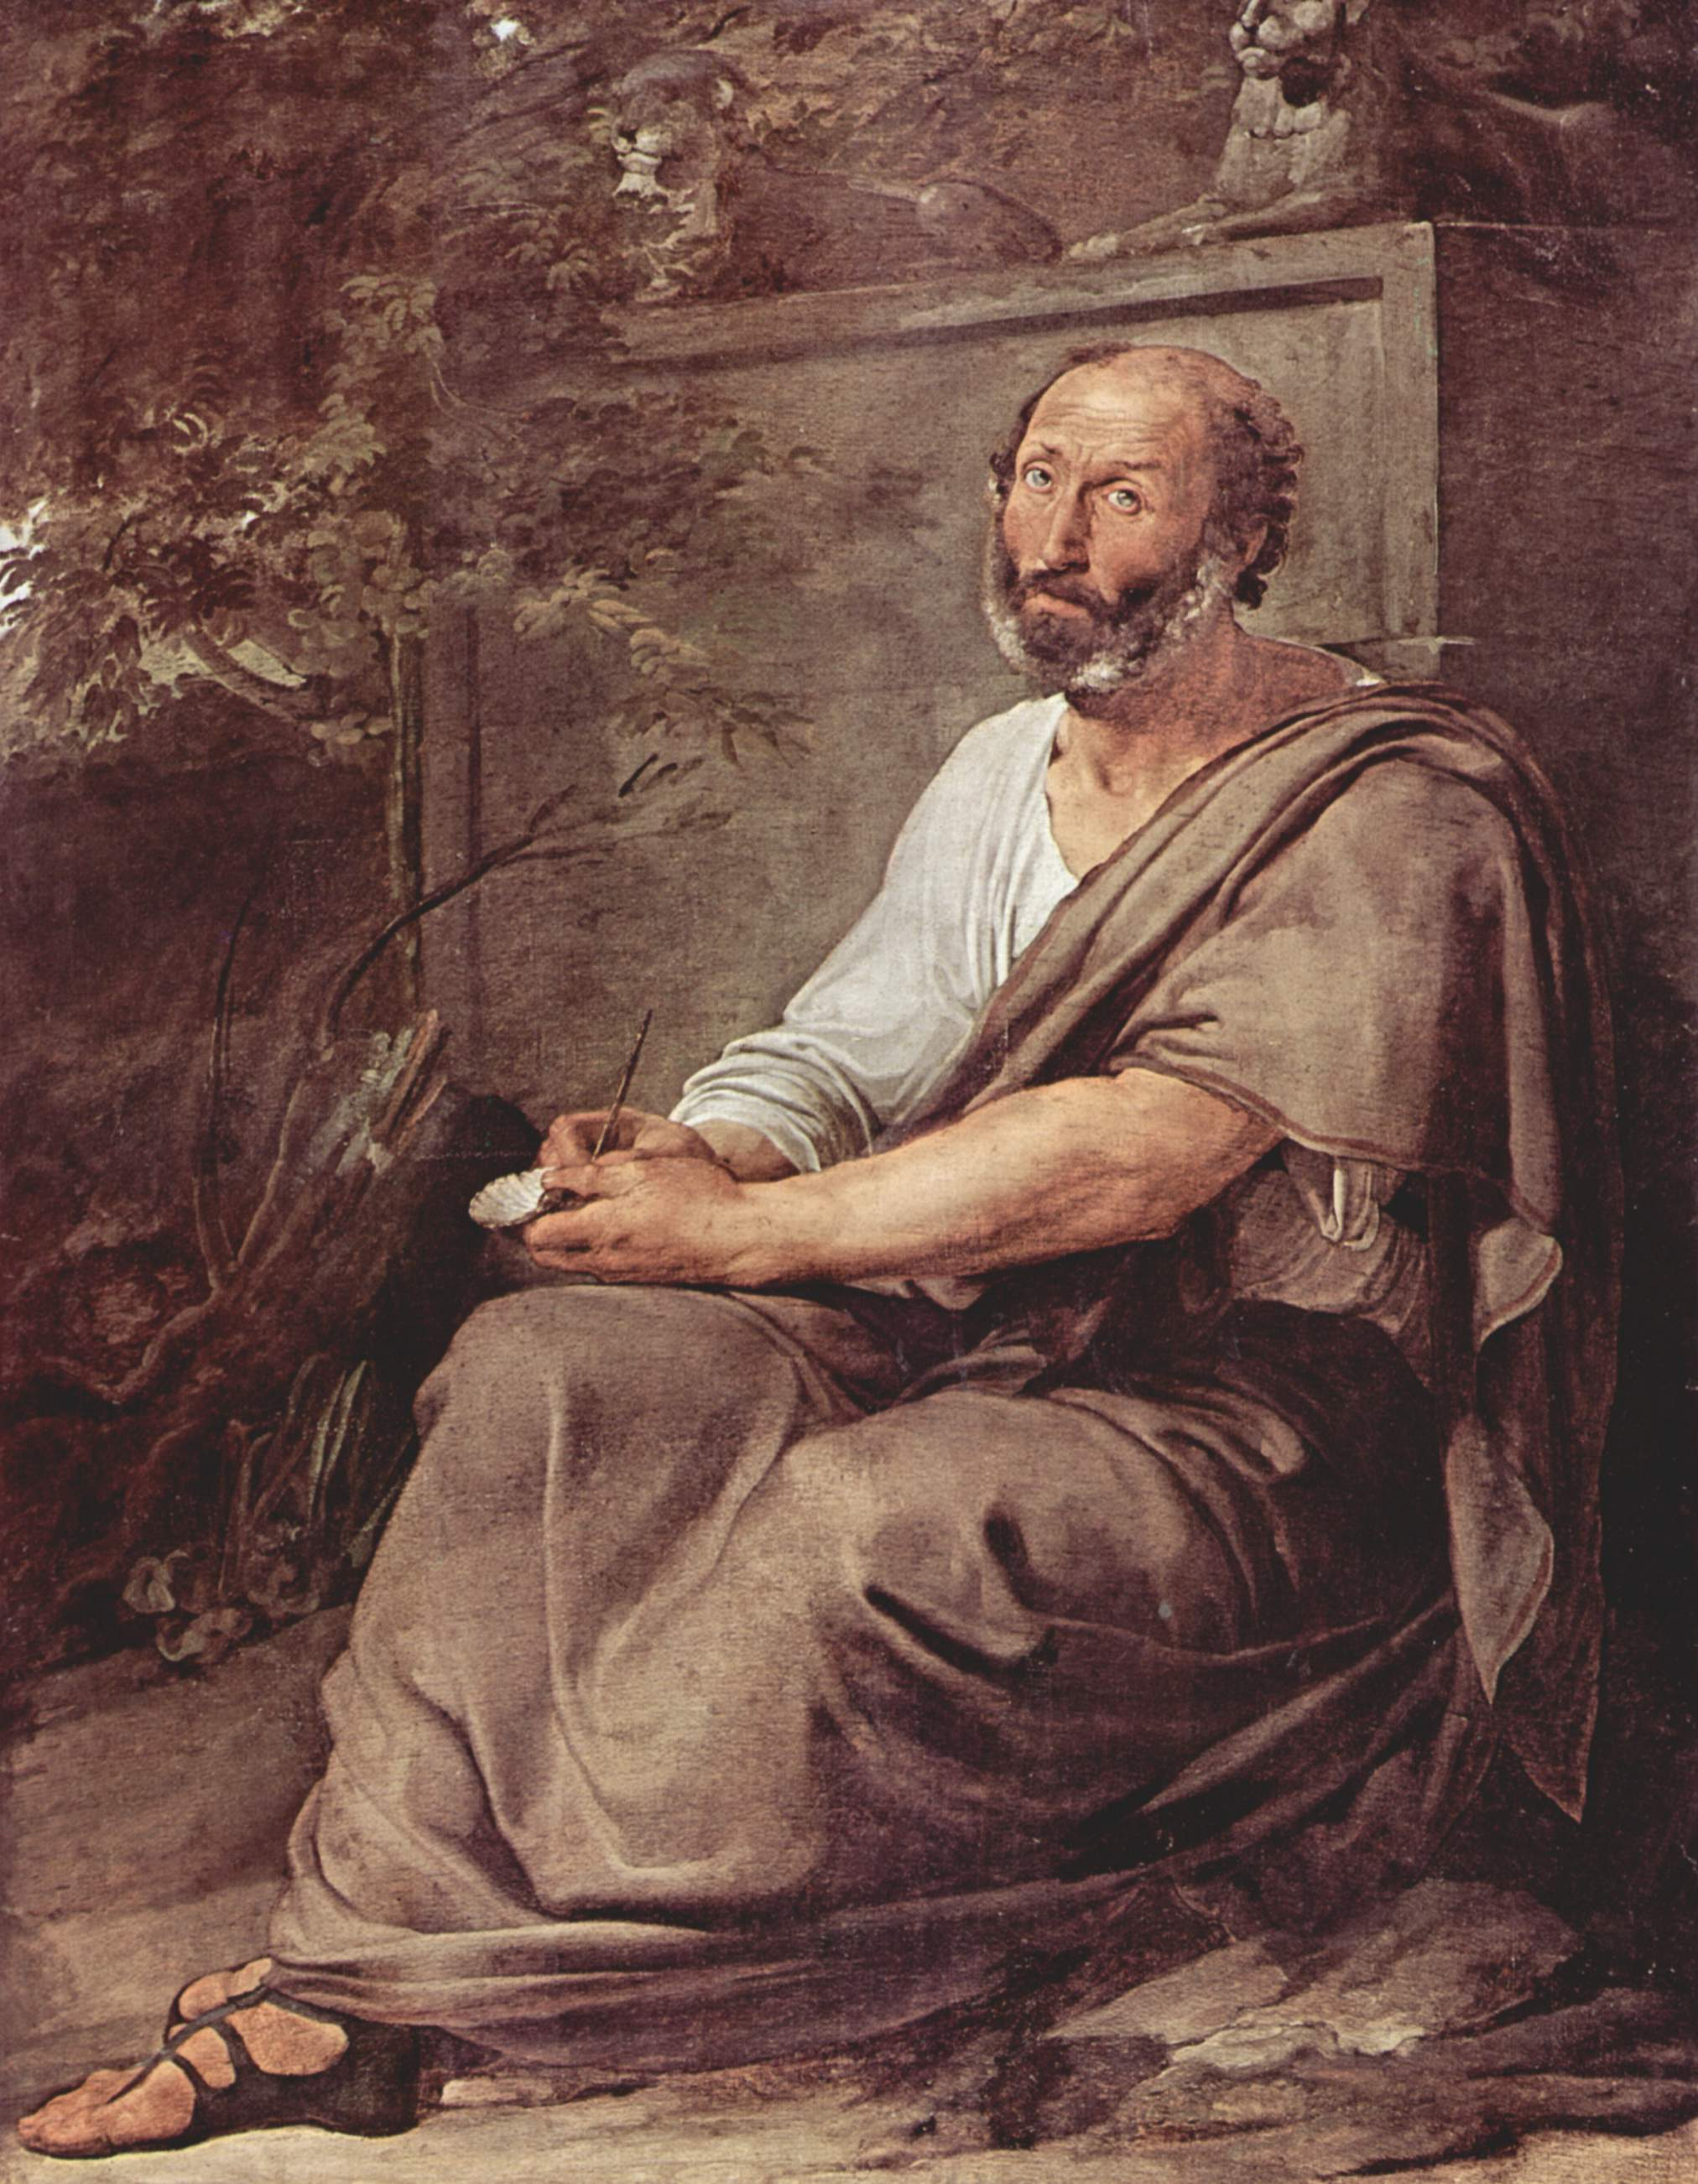 http://upload.wikimedia.org/wikipedia/commons/c/cd/Francesco_Hayez_001.jpg